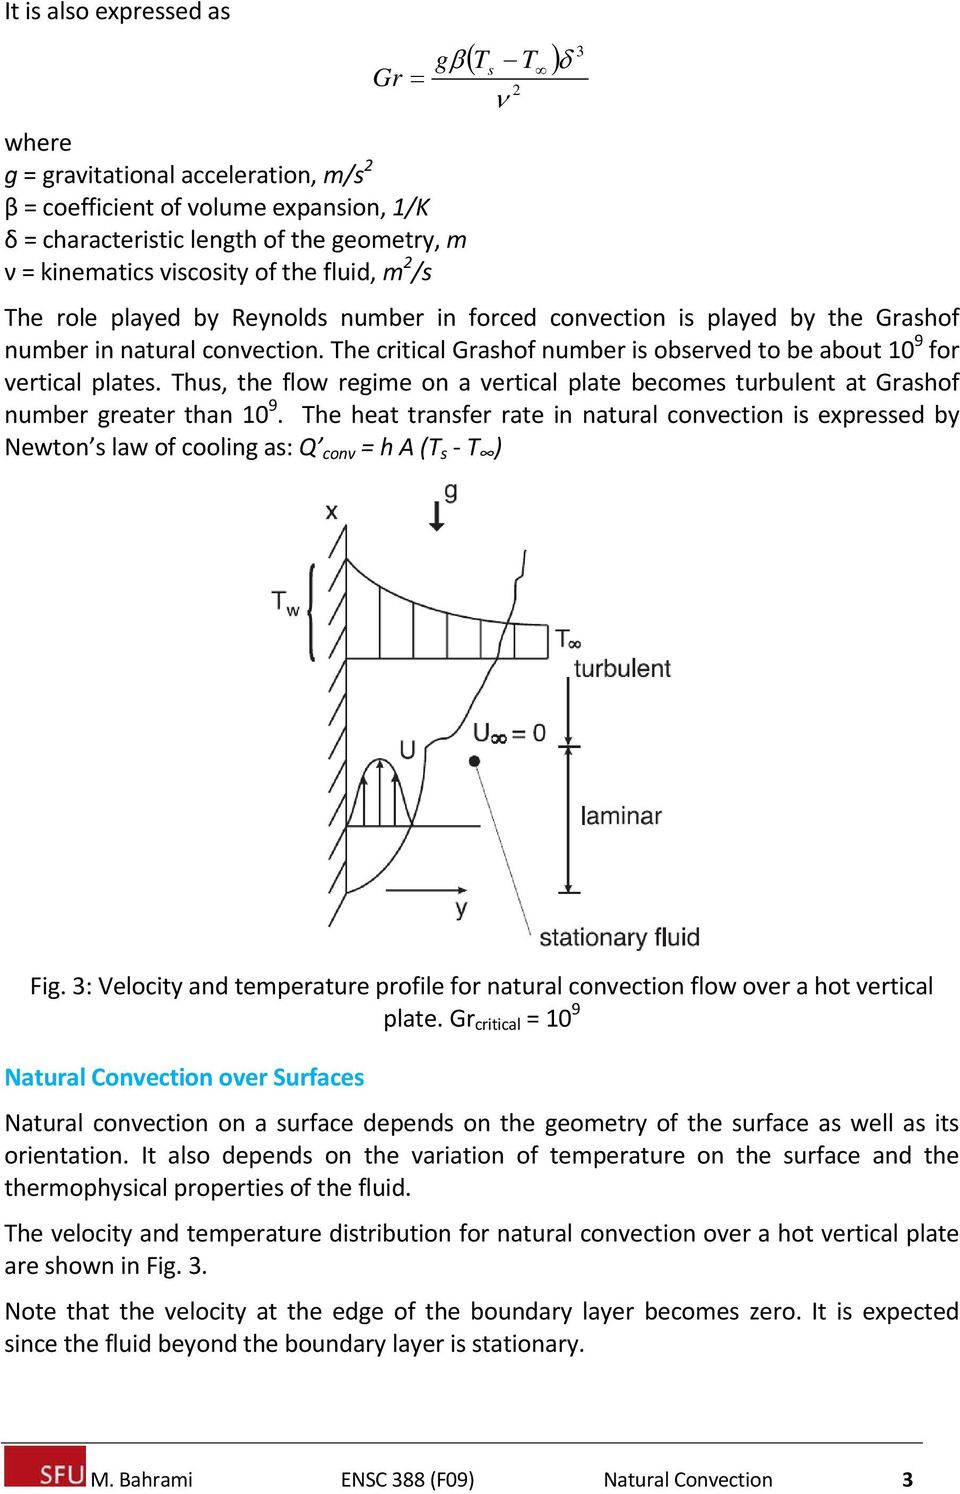 Thus, the flow regime on a vertical plate becomes turbulent at Grashof number greater than 9.